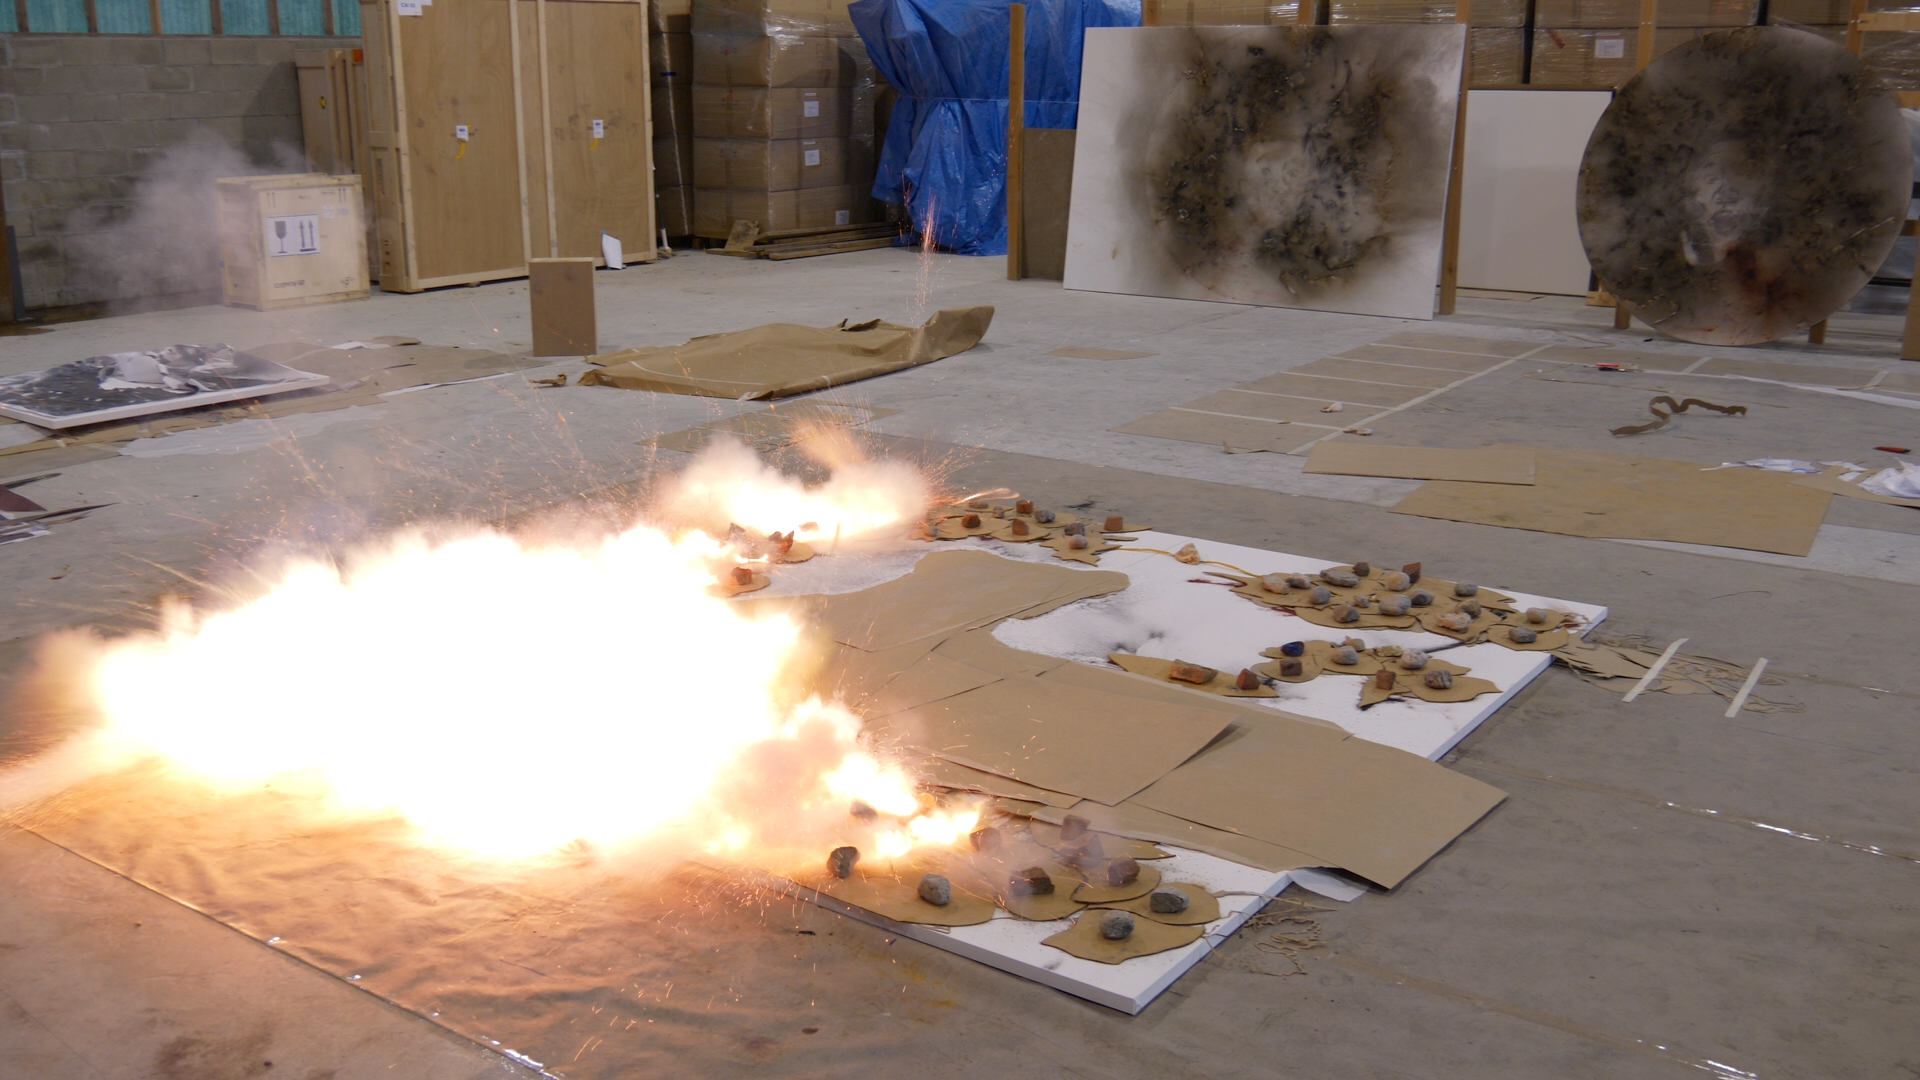 Cai Guo-Qiang creating gunpowder paintings, 2018. Videography by Lin King. Courtesy of Cai Studio.